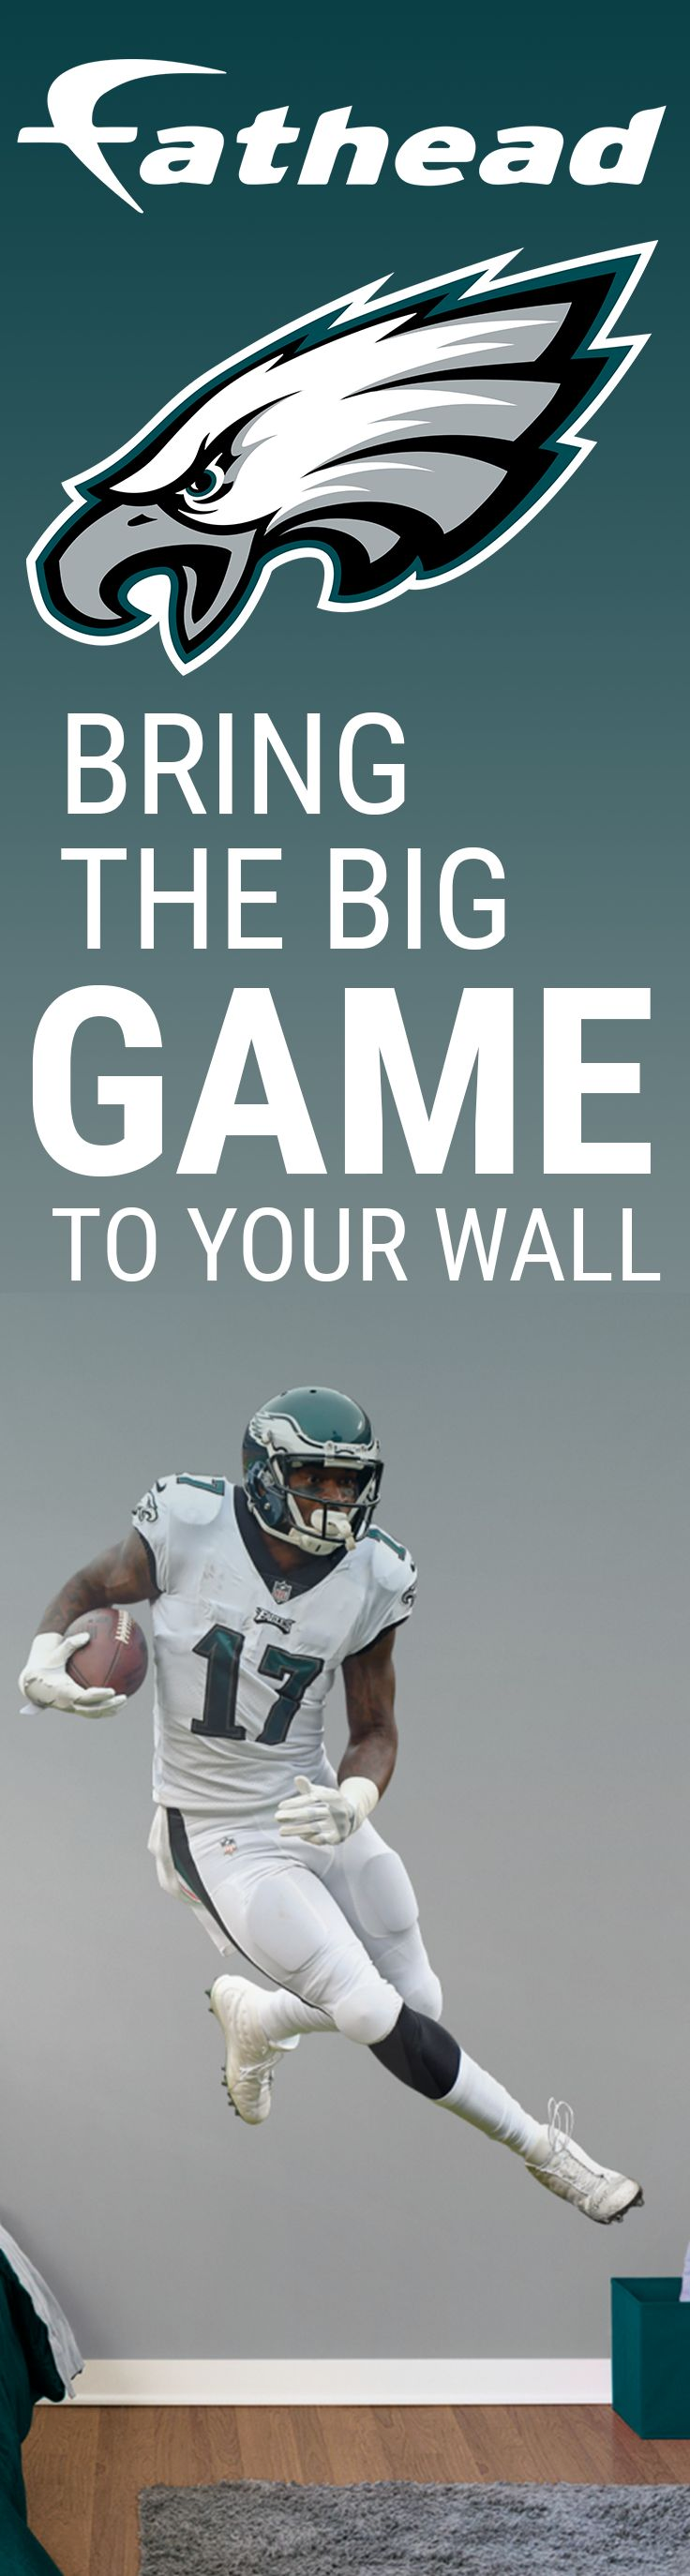 Bring Super Bowl LII to your wall! Show your Philadelphia Eagles spirit with Fathead. Get an authentic, licensed Alshon Jeffery Fathead wall decal or Eagles logo wall decal. Forget football posters and wall stickers, and Go Big - REAL.BIG. with an Eagles Fathead wall graphic.  Fathead wall decals are life-size action images that you stick on any smooth surface. You can move them and reuse them and they are safe for walls!